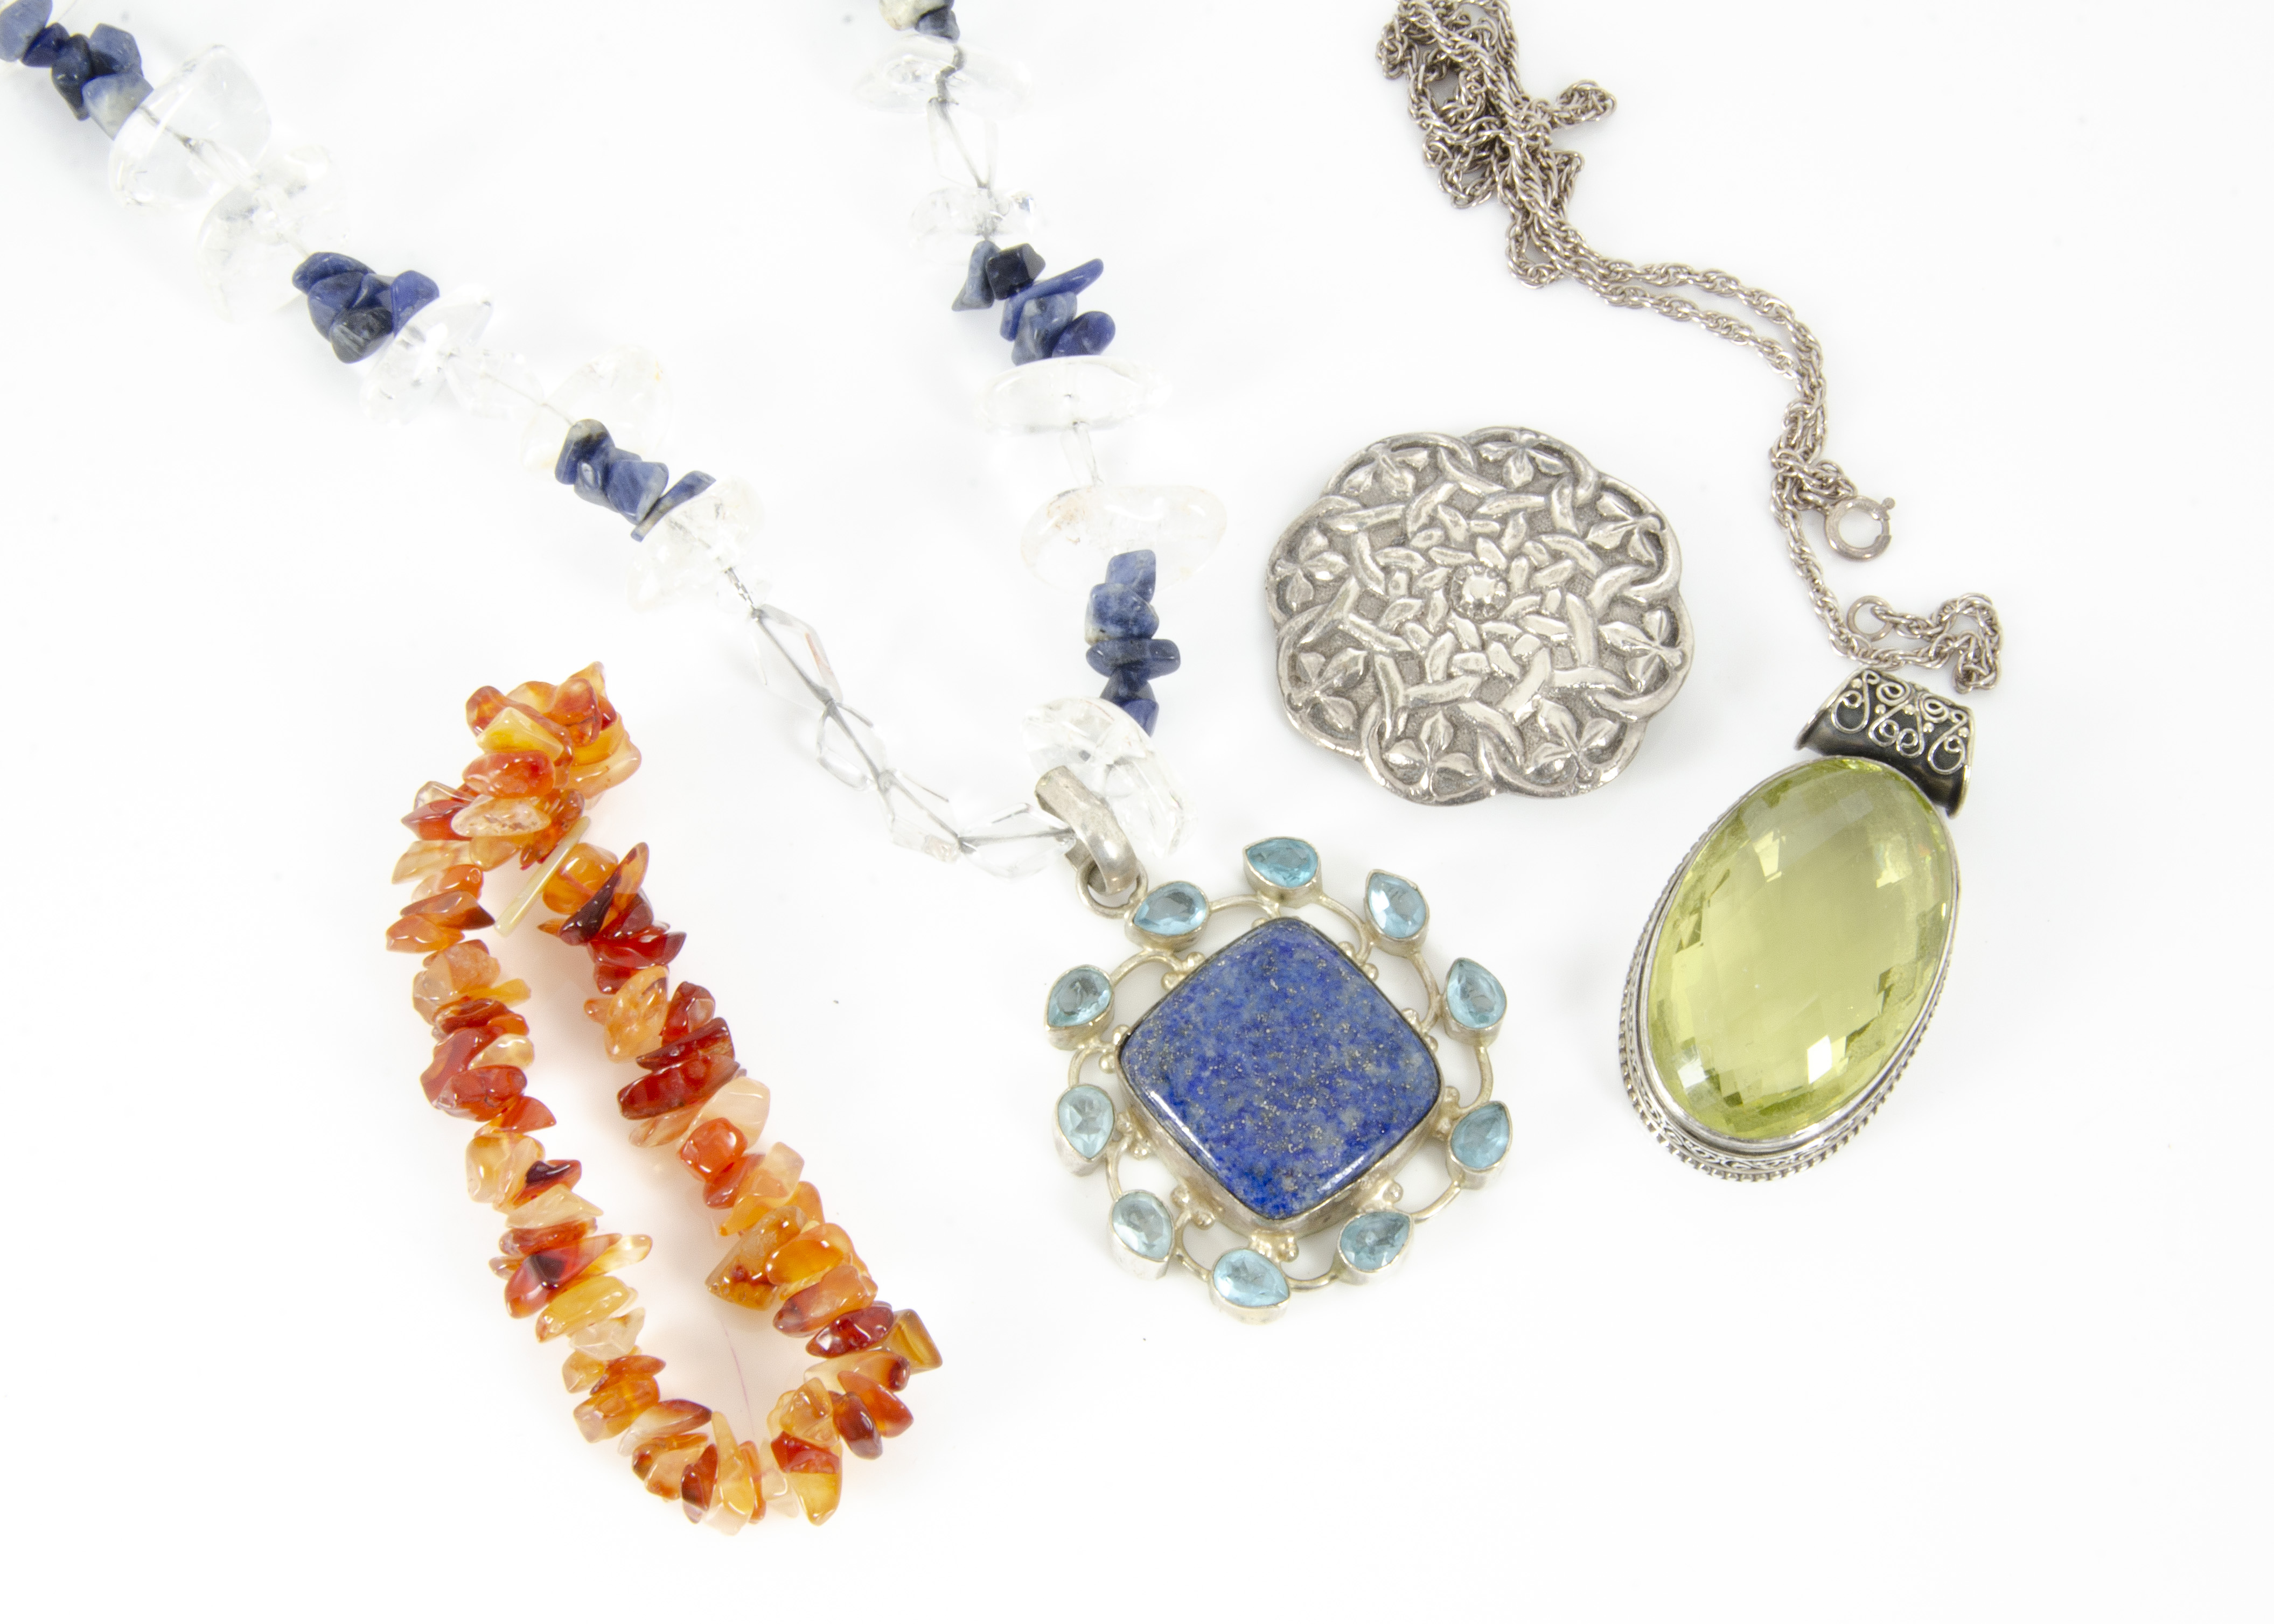 Lot 254 - A collection of various costume jewels, including a silver brooch, a lapis lazuli, rock crystal